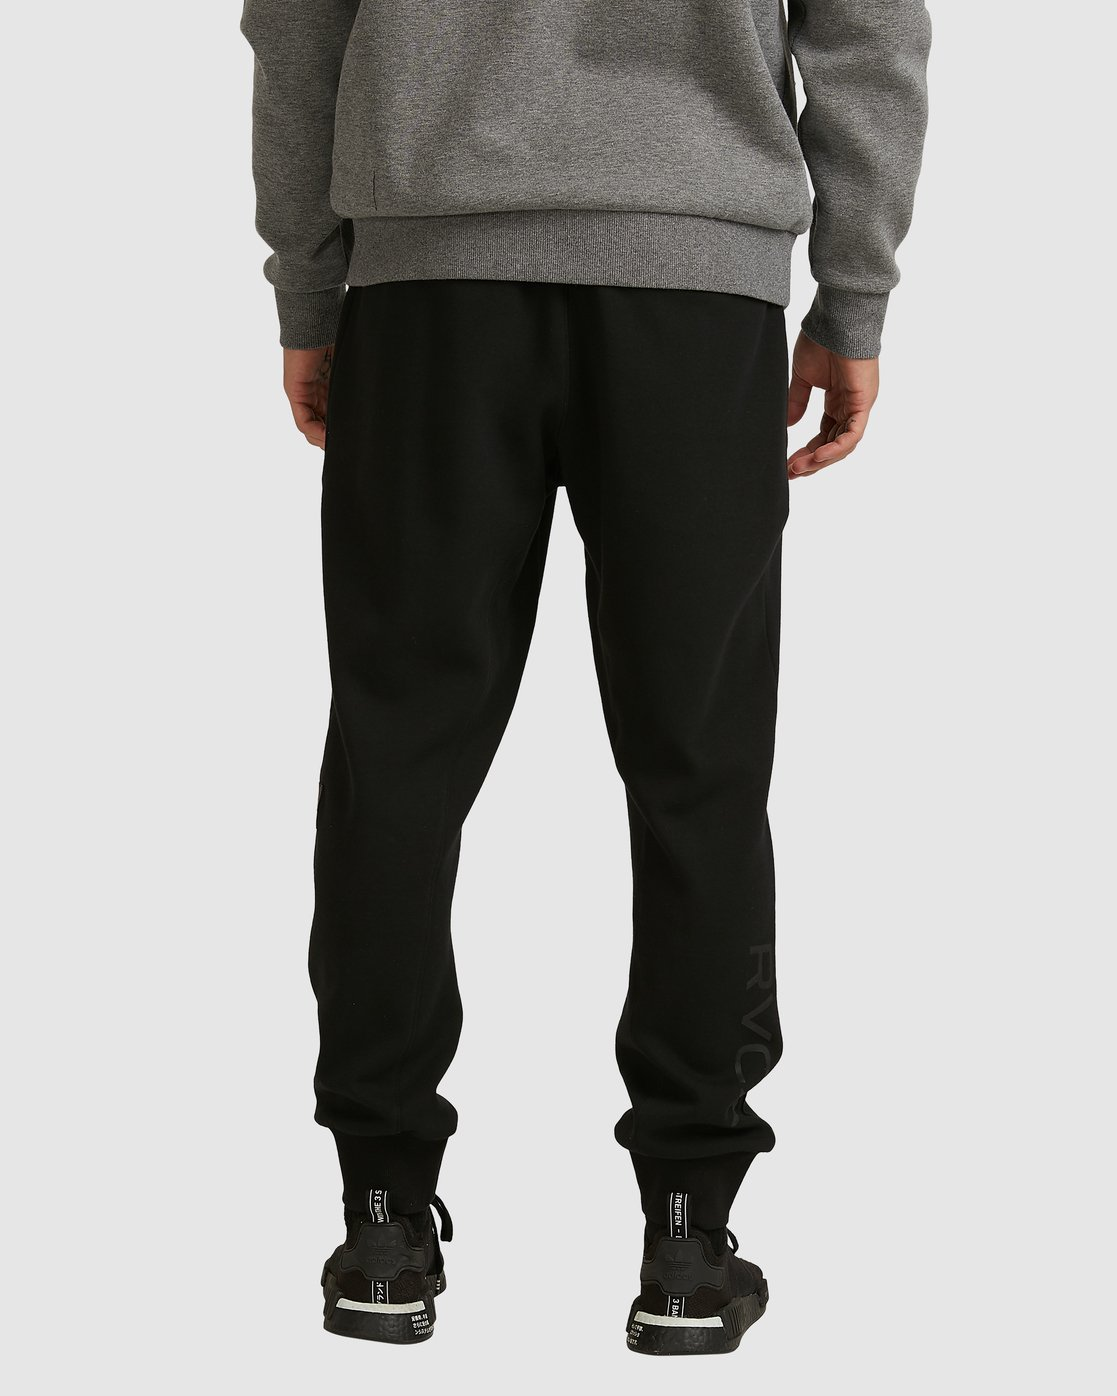 2 SPORT TECH SWEATPANT Black R305271 RVCA